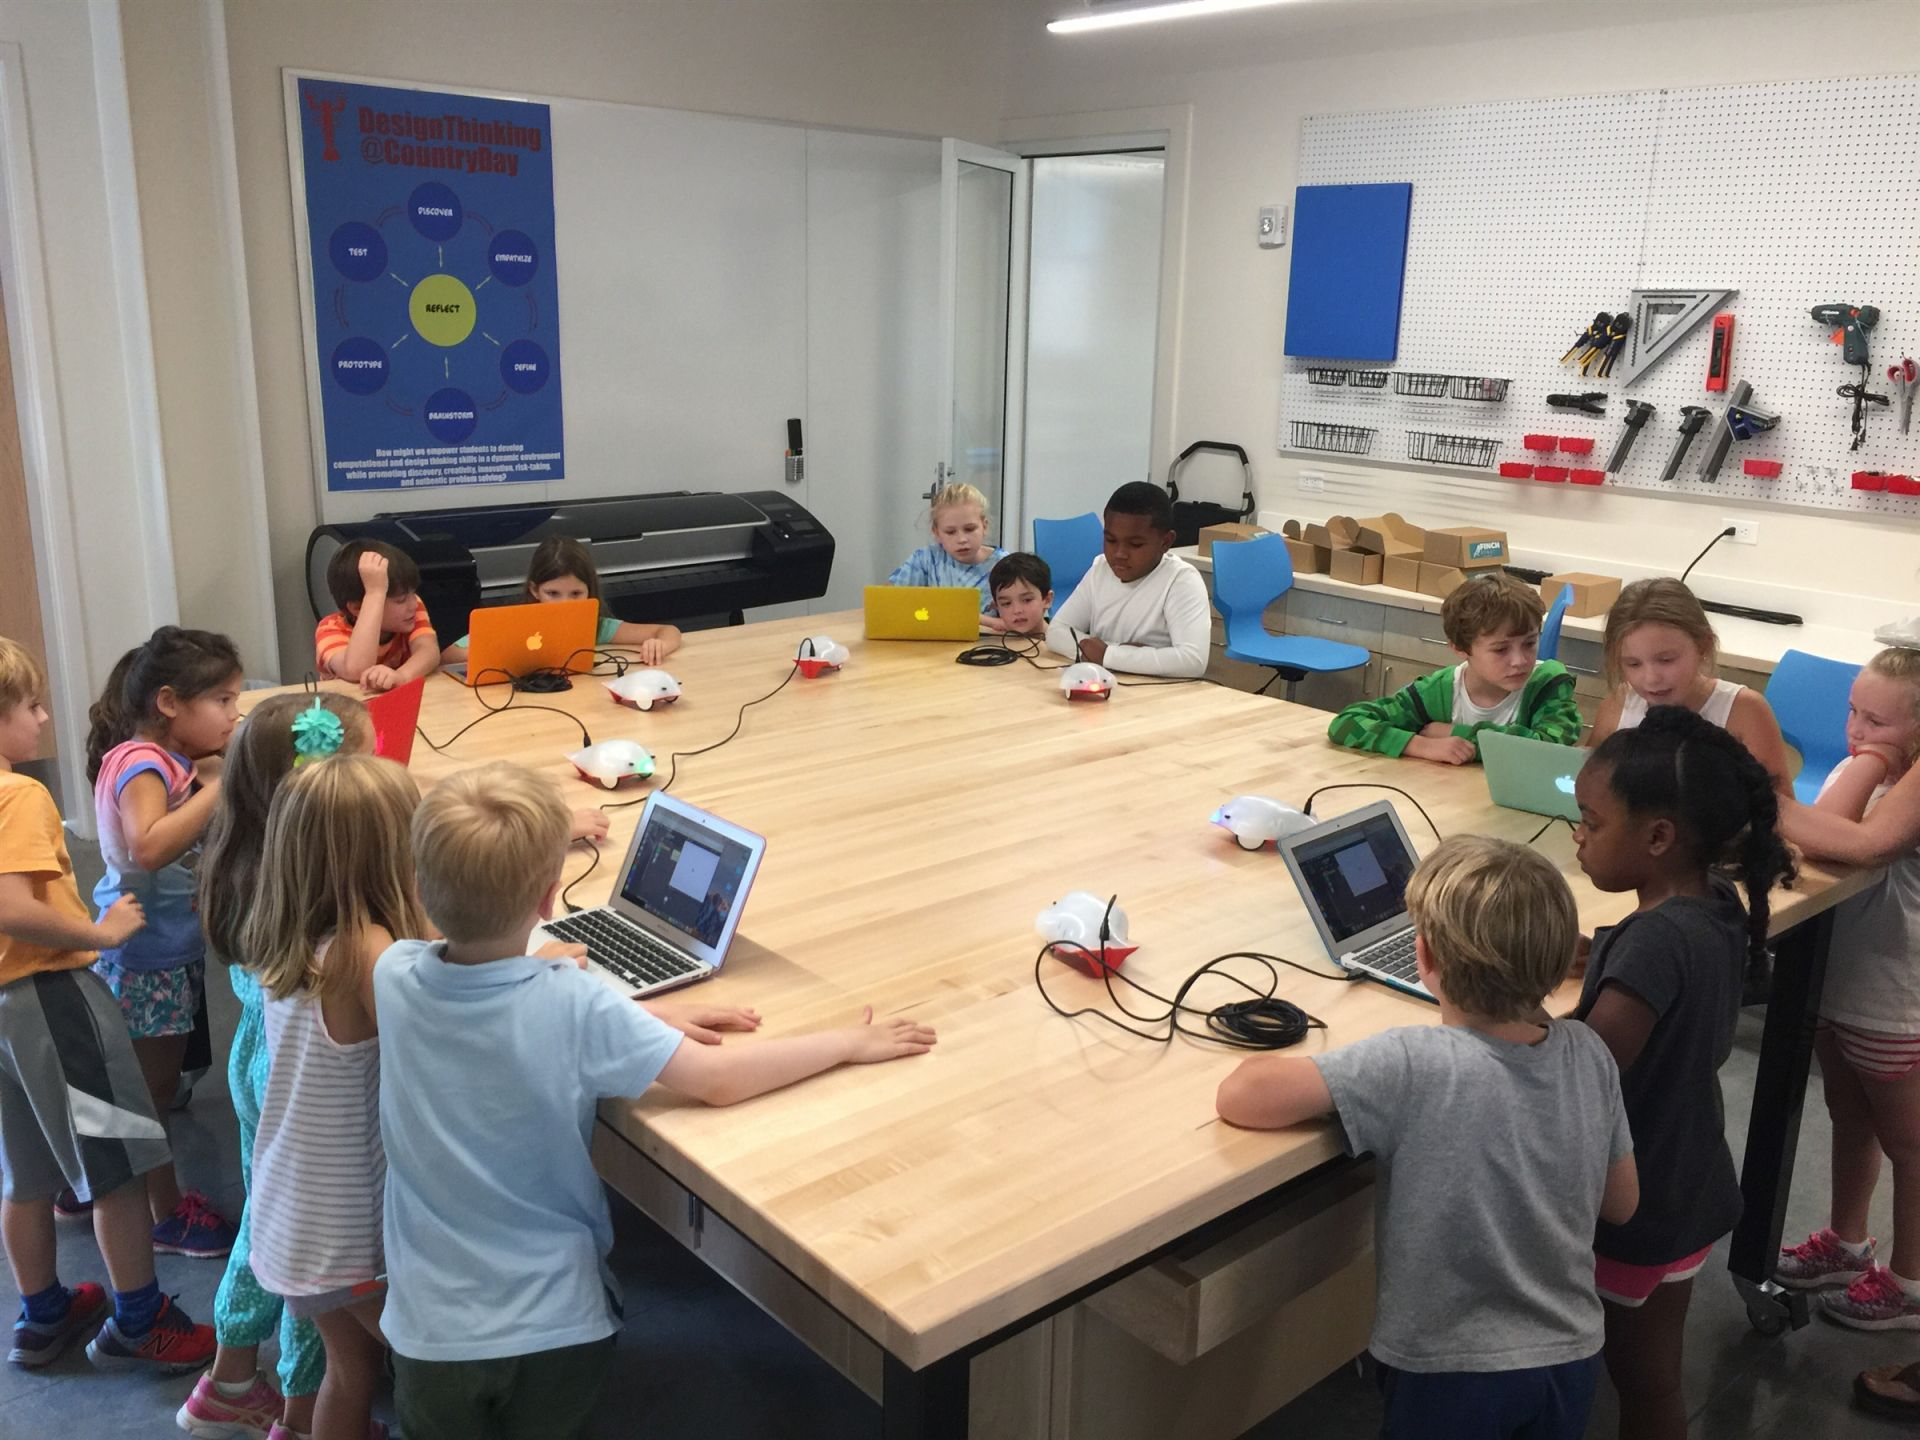 Lower School students working with Finch Robots in the Lydia Sneed Engineering Lab